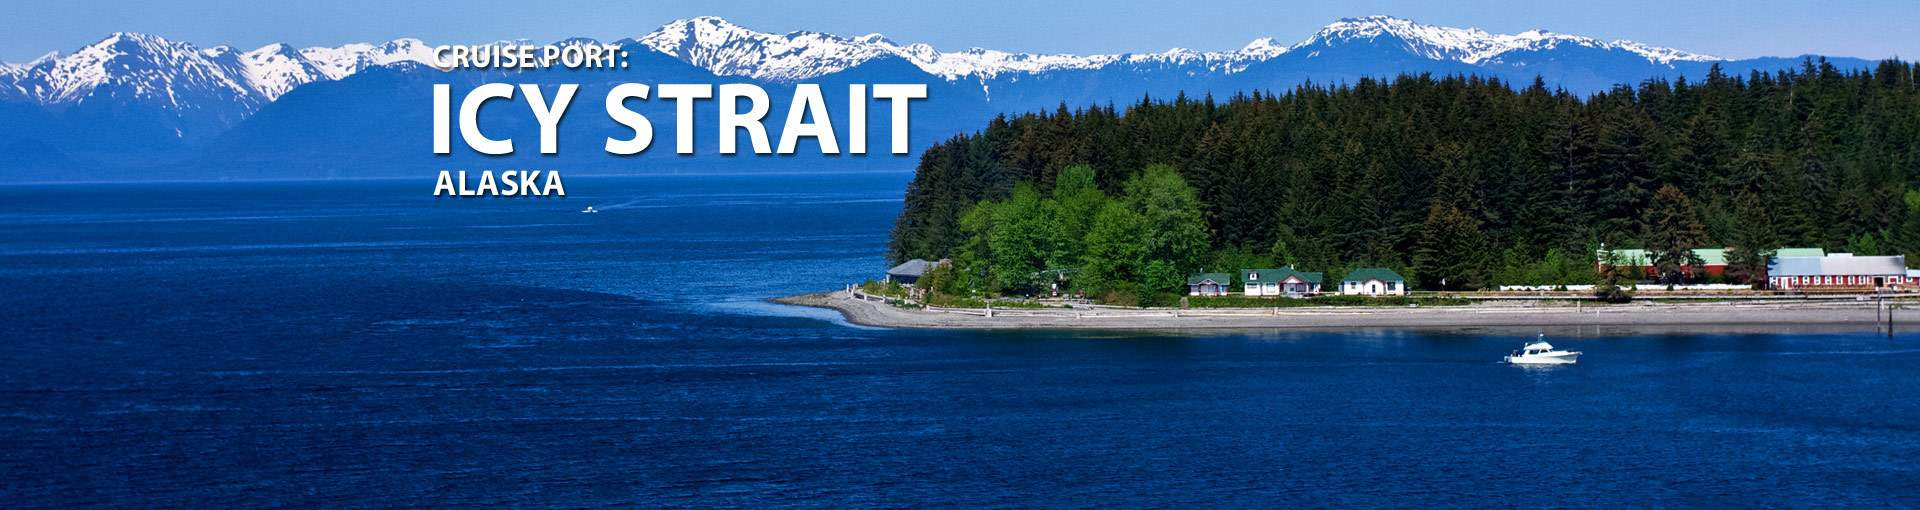 Cruise Port: Icy Strait, Alaska